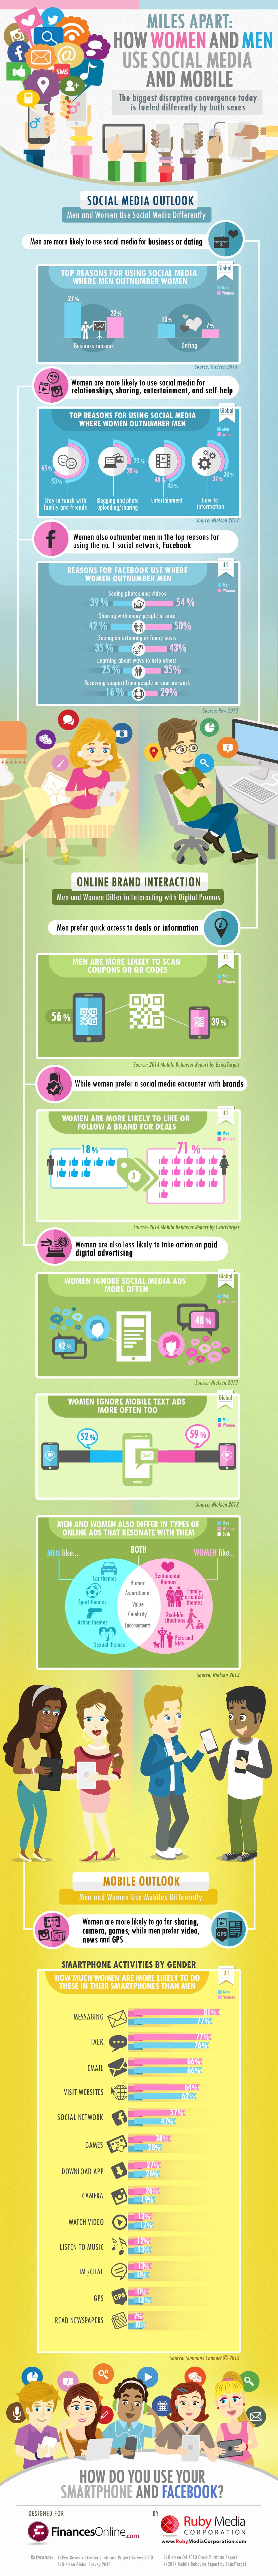 How Men and Women Use Social Media and Mobile Devices [Infographic]